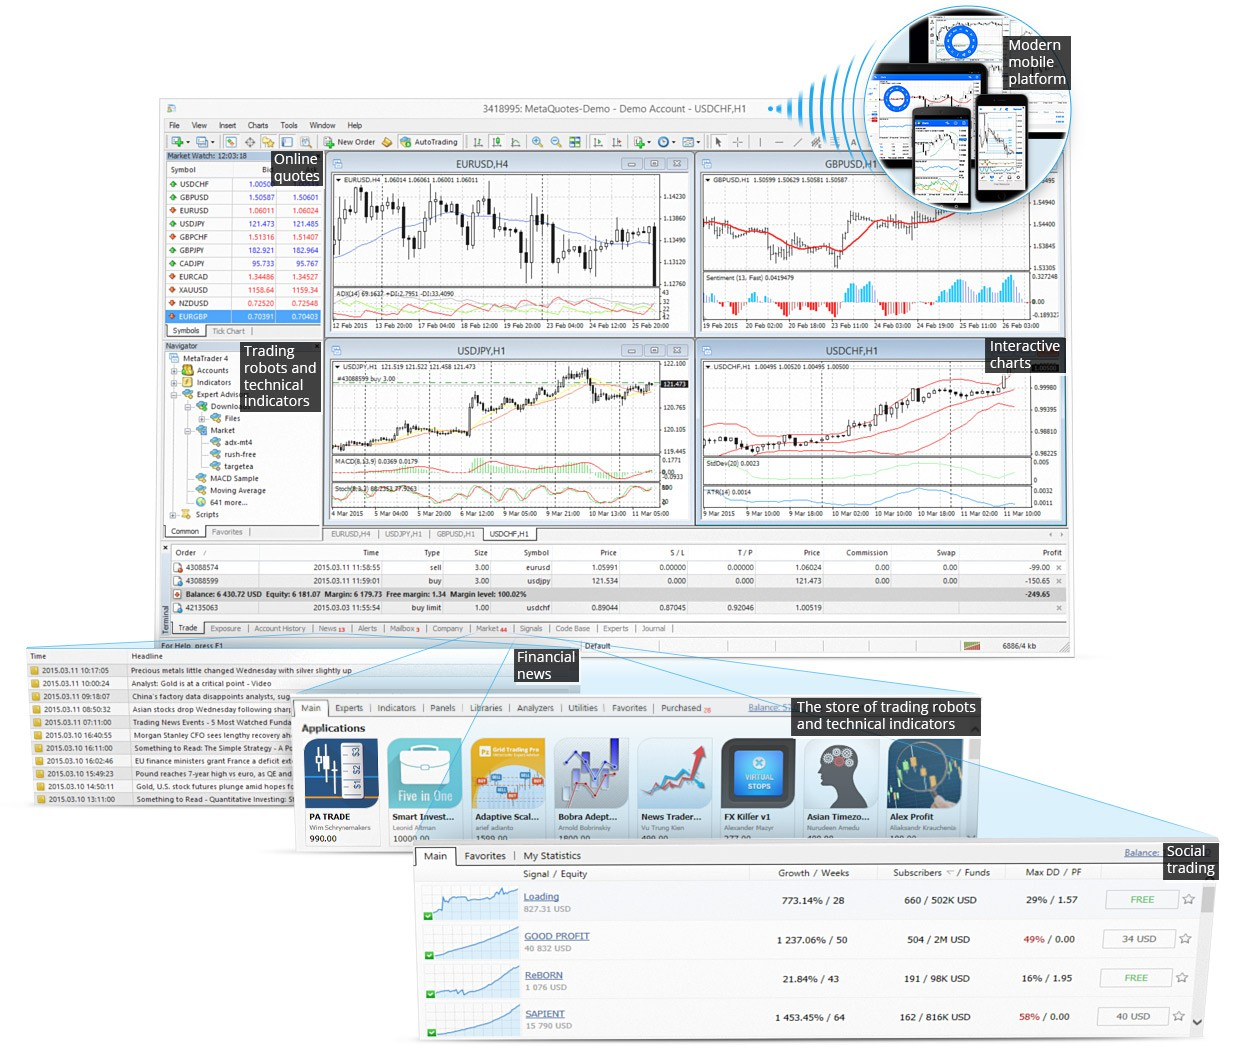 MetaTrader 4 ultimate Trading Platform: trading robots, technical indicators, interactive charts, social trading, Market and financial news